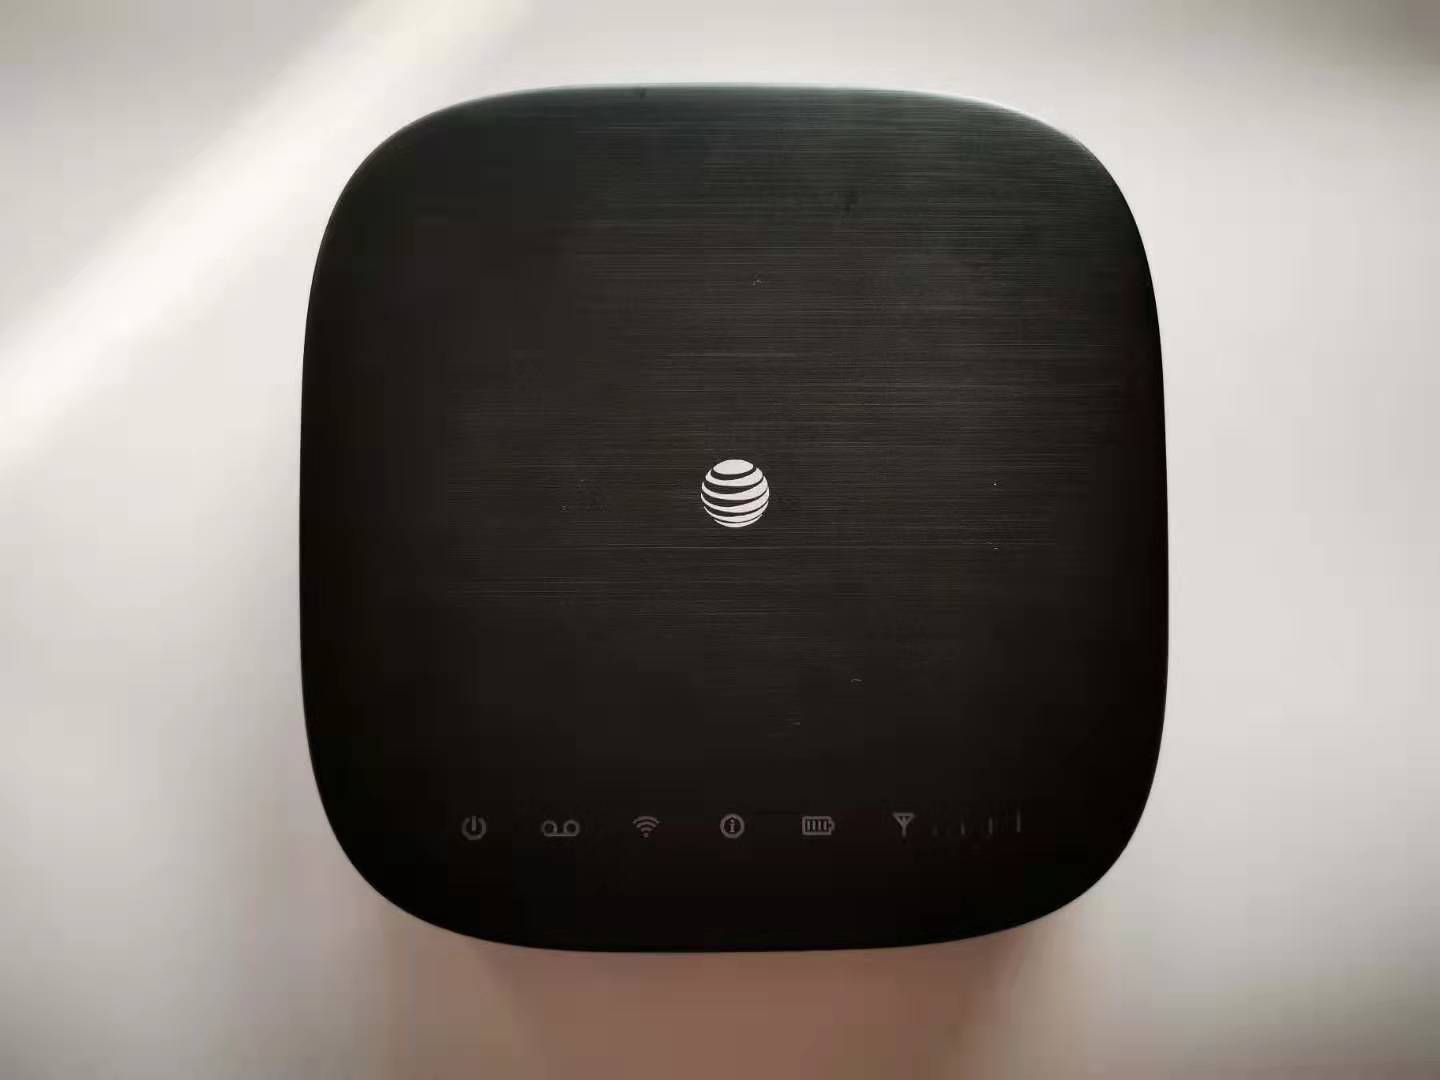 USA STOCK Unlocked AT&T Wireless Internet WiFi 4G LTE Router  IFWA-40